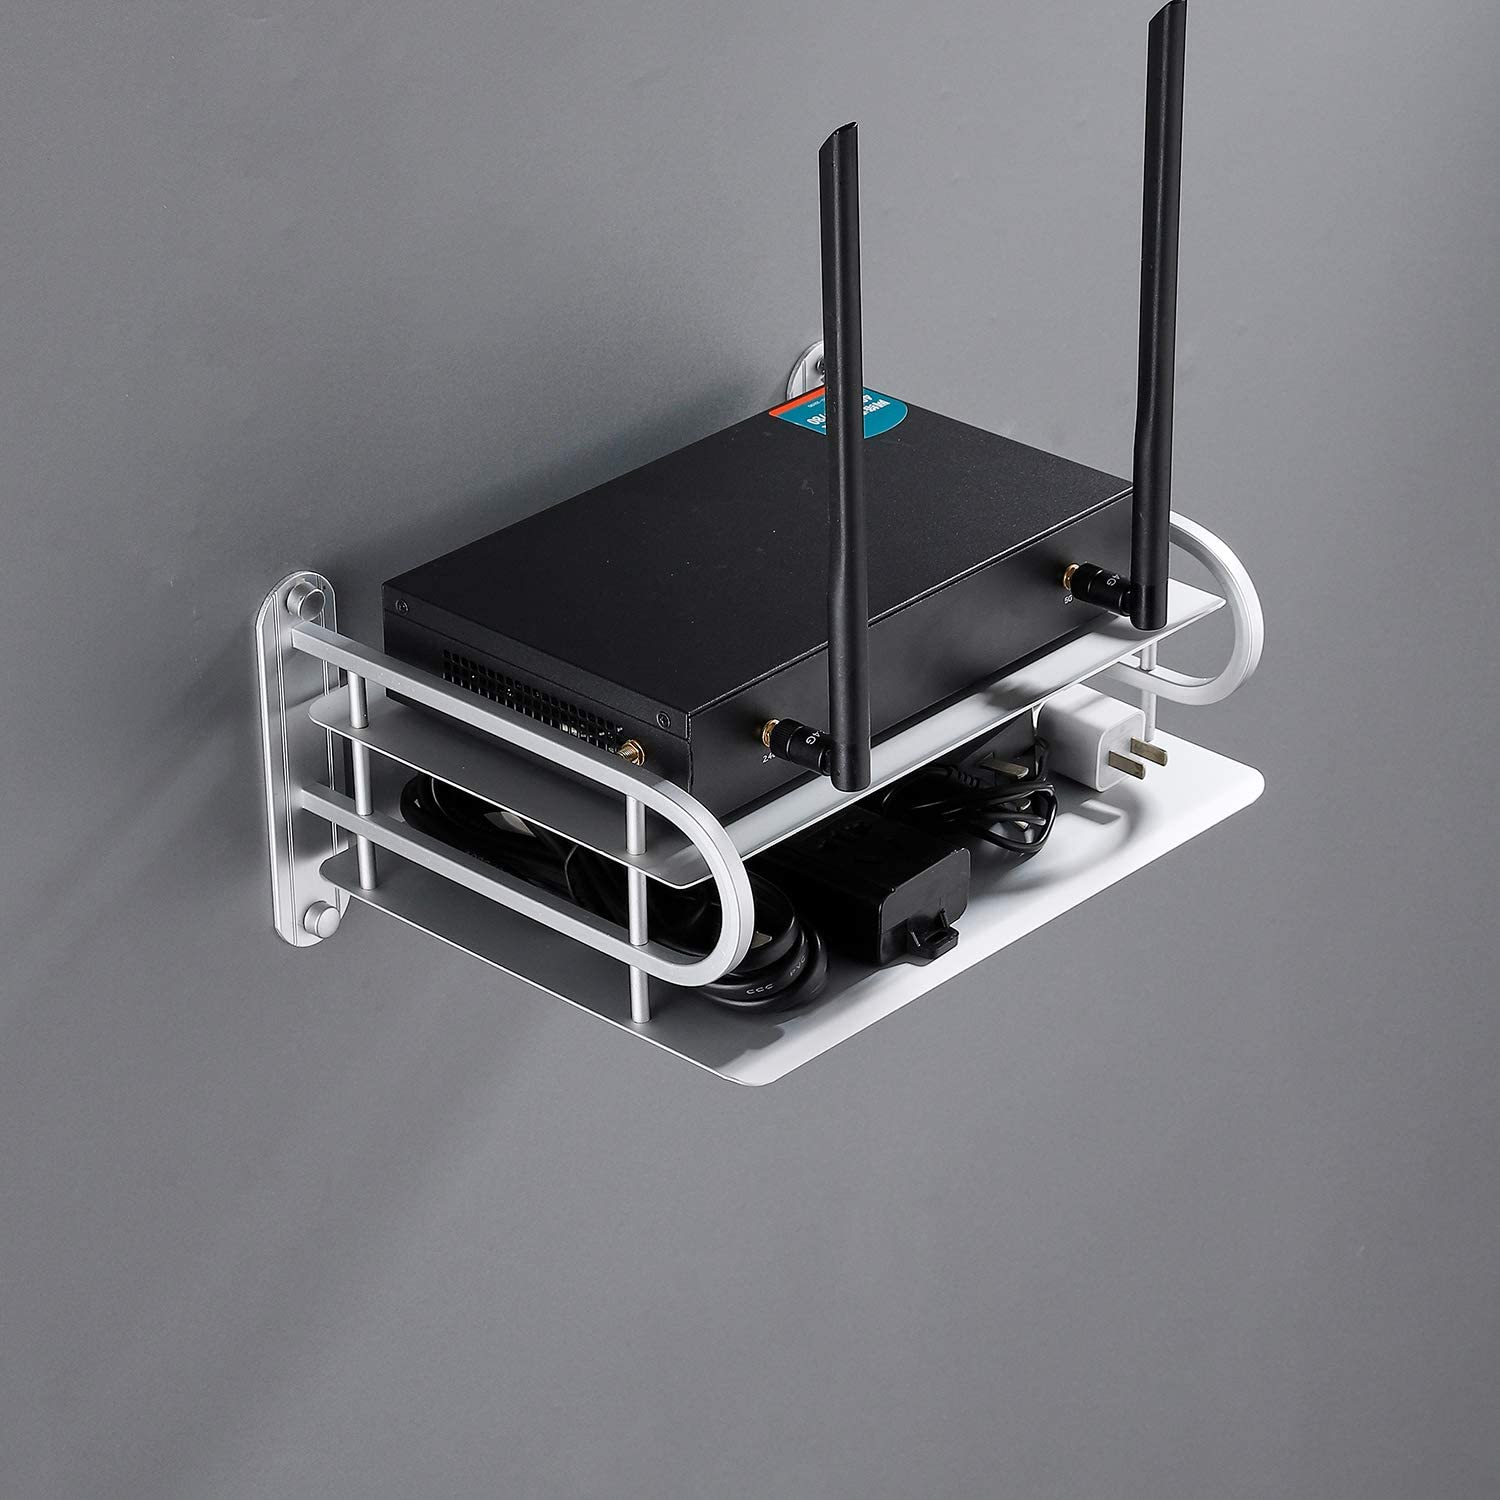 Wall Mounted WiFi Router Ranking TOP7 Free shipping New Holder Home Organizer Shelf for Socket